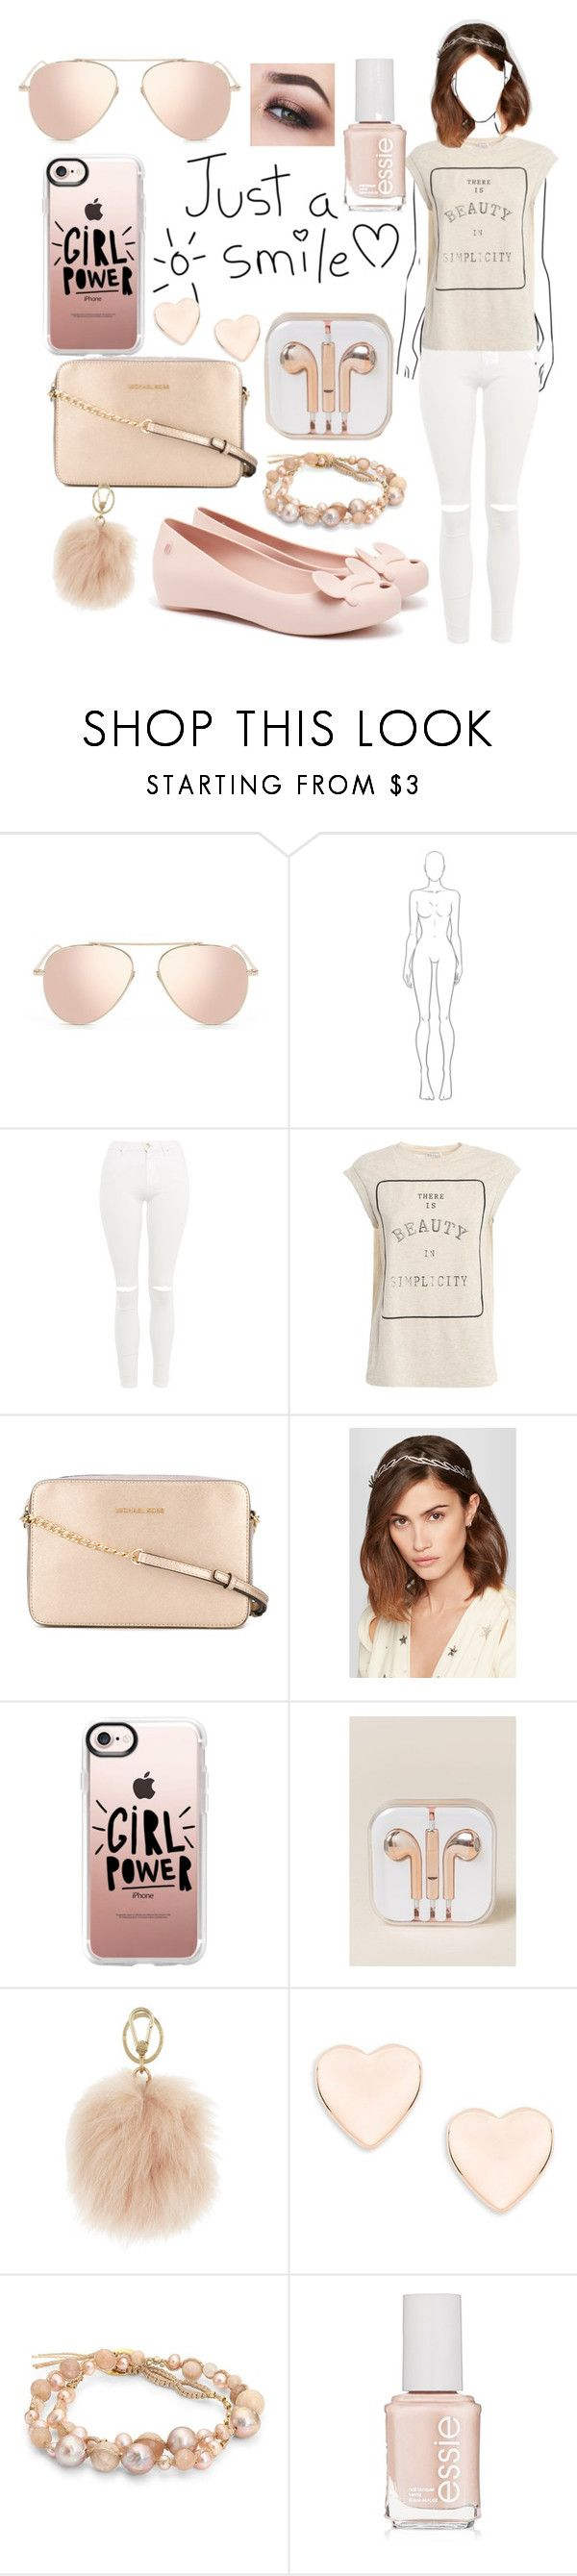 """""""ILYMIX sunglasses combination"""" by majami05 ❤ liked on Polyvore featuring Topshop, Brunello Cucinelli, Michael Kors, Jennifer Behr, Casetify, OK Originals, Furla, Ted Baker, Chan Luu and Essie"""